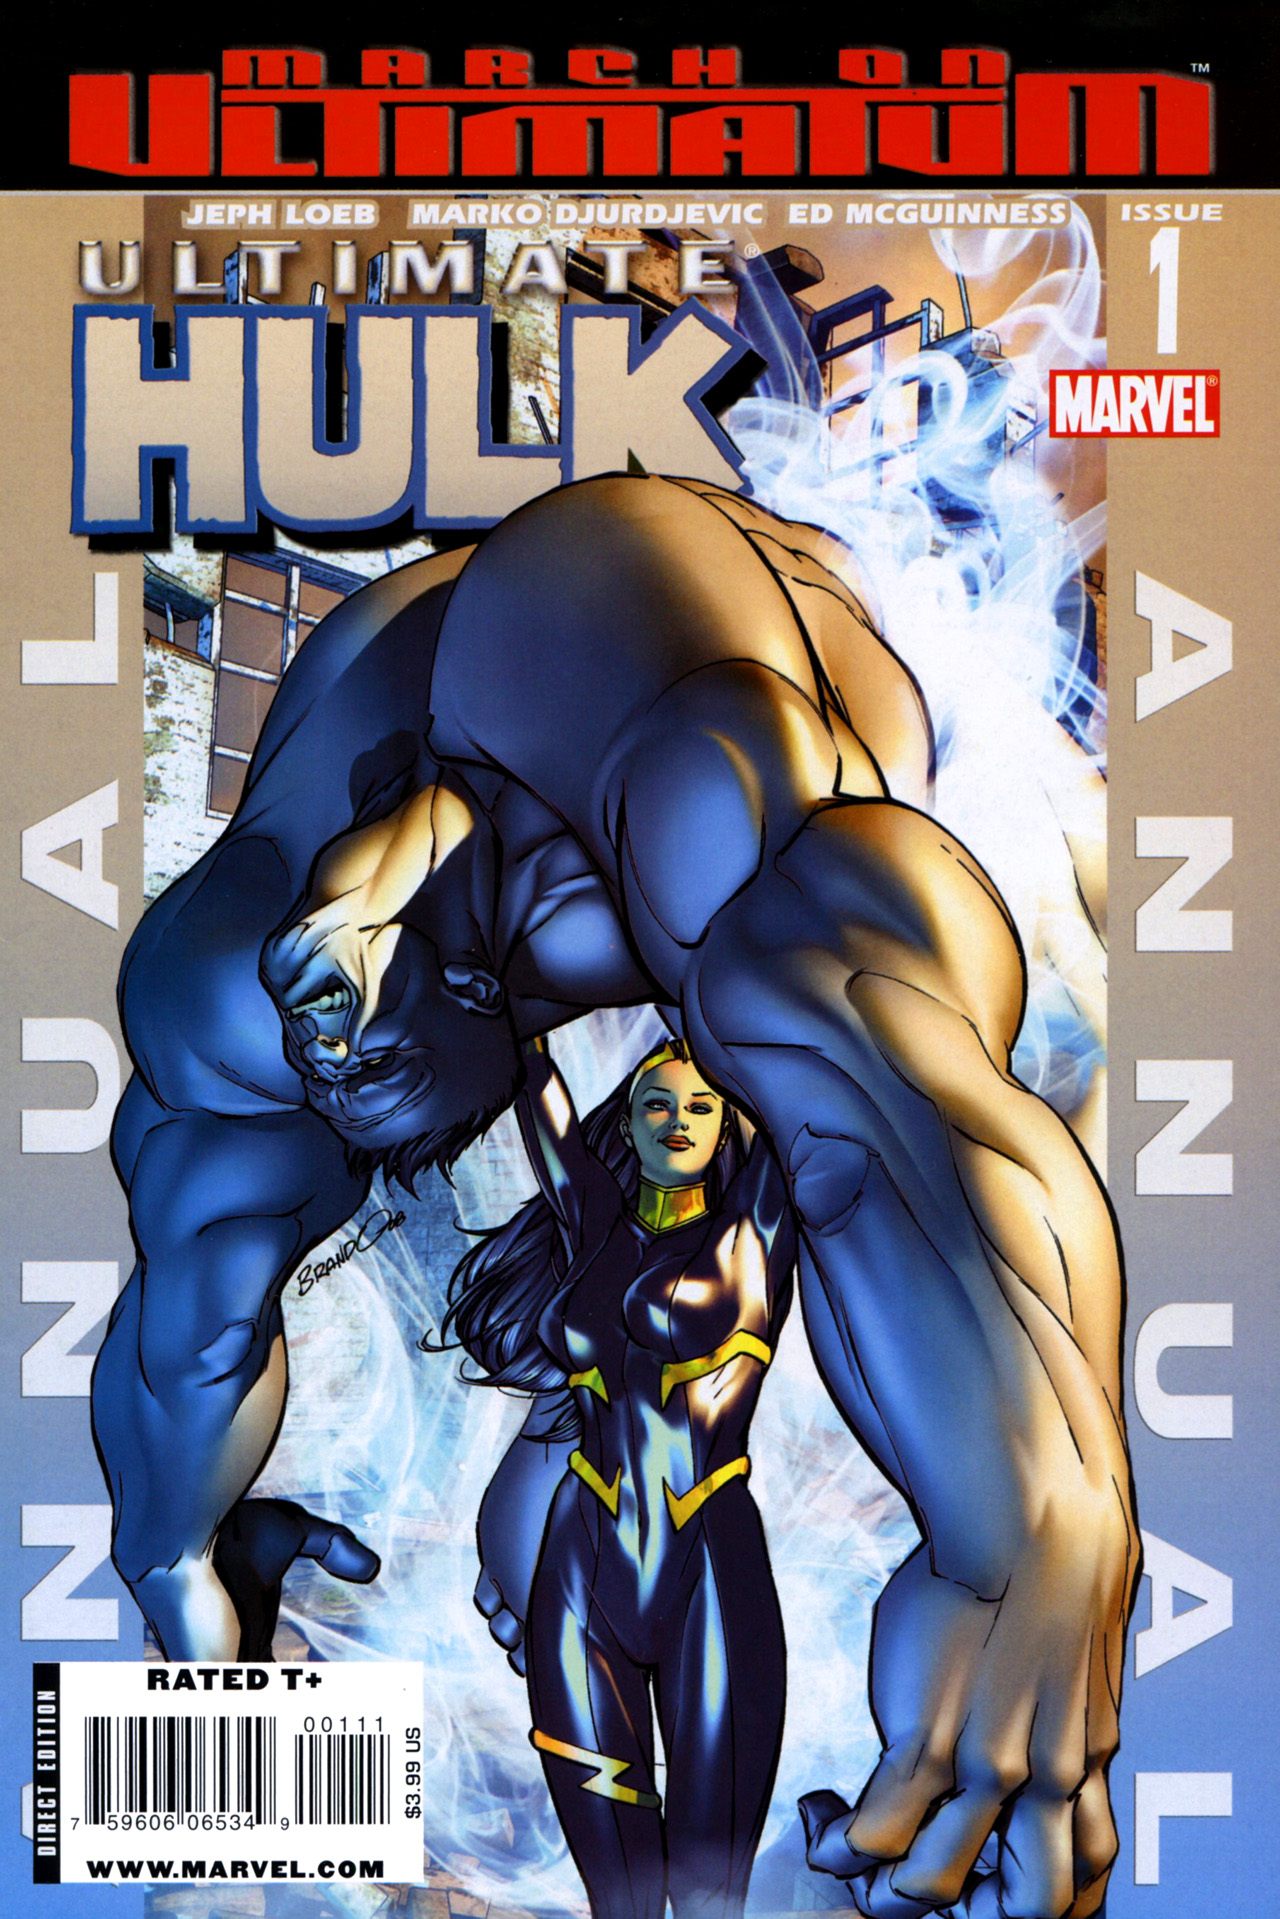 Read online Ultimate Hulk Annual comic -  Issue # Full - 1